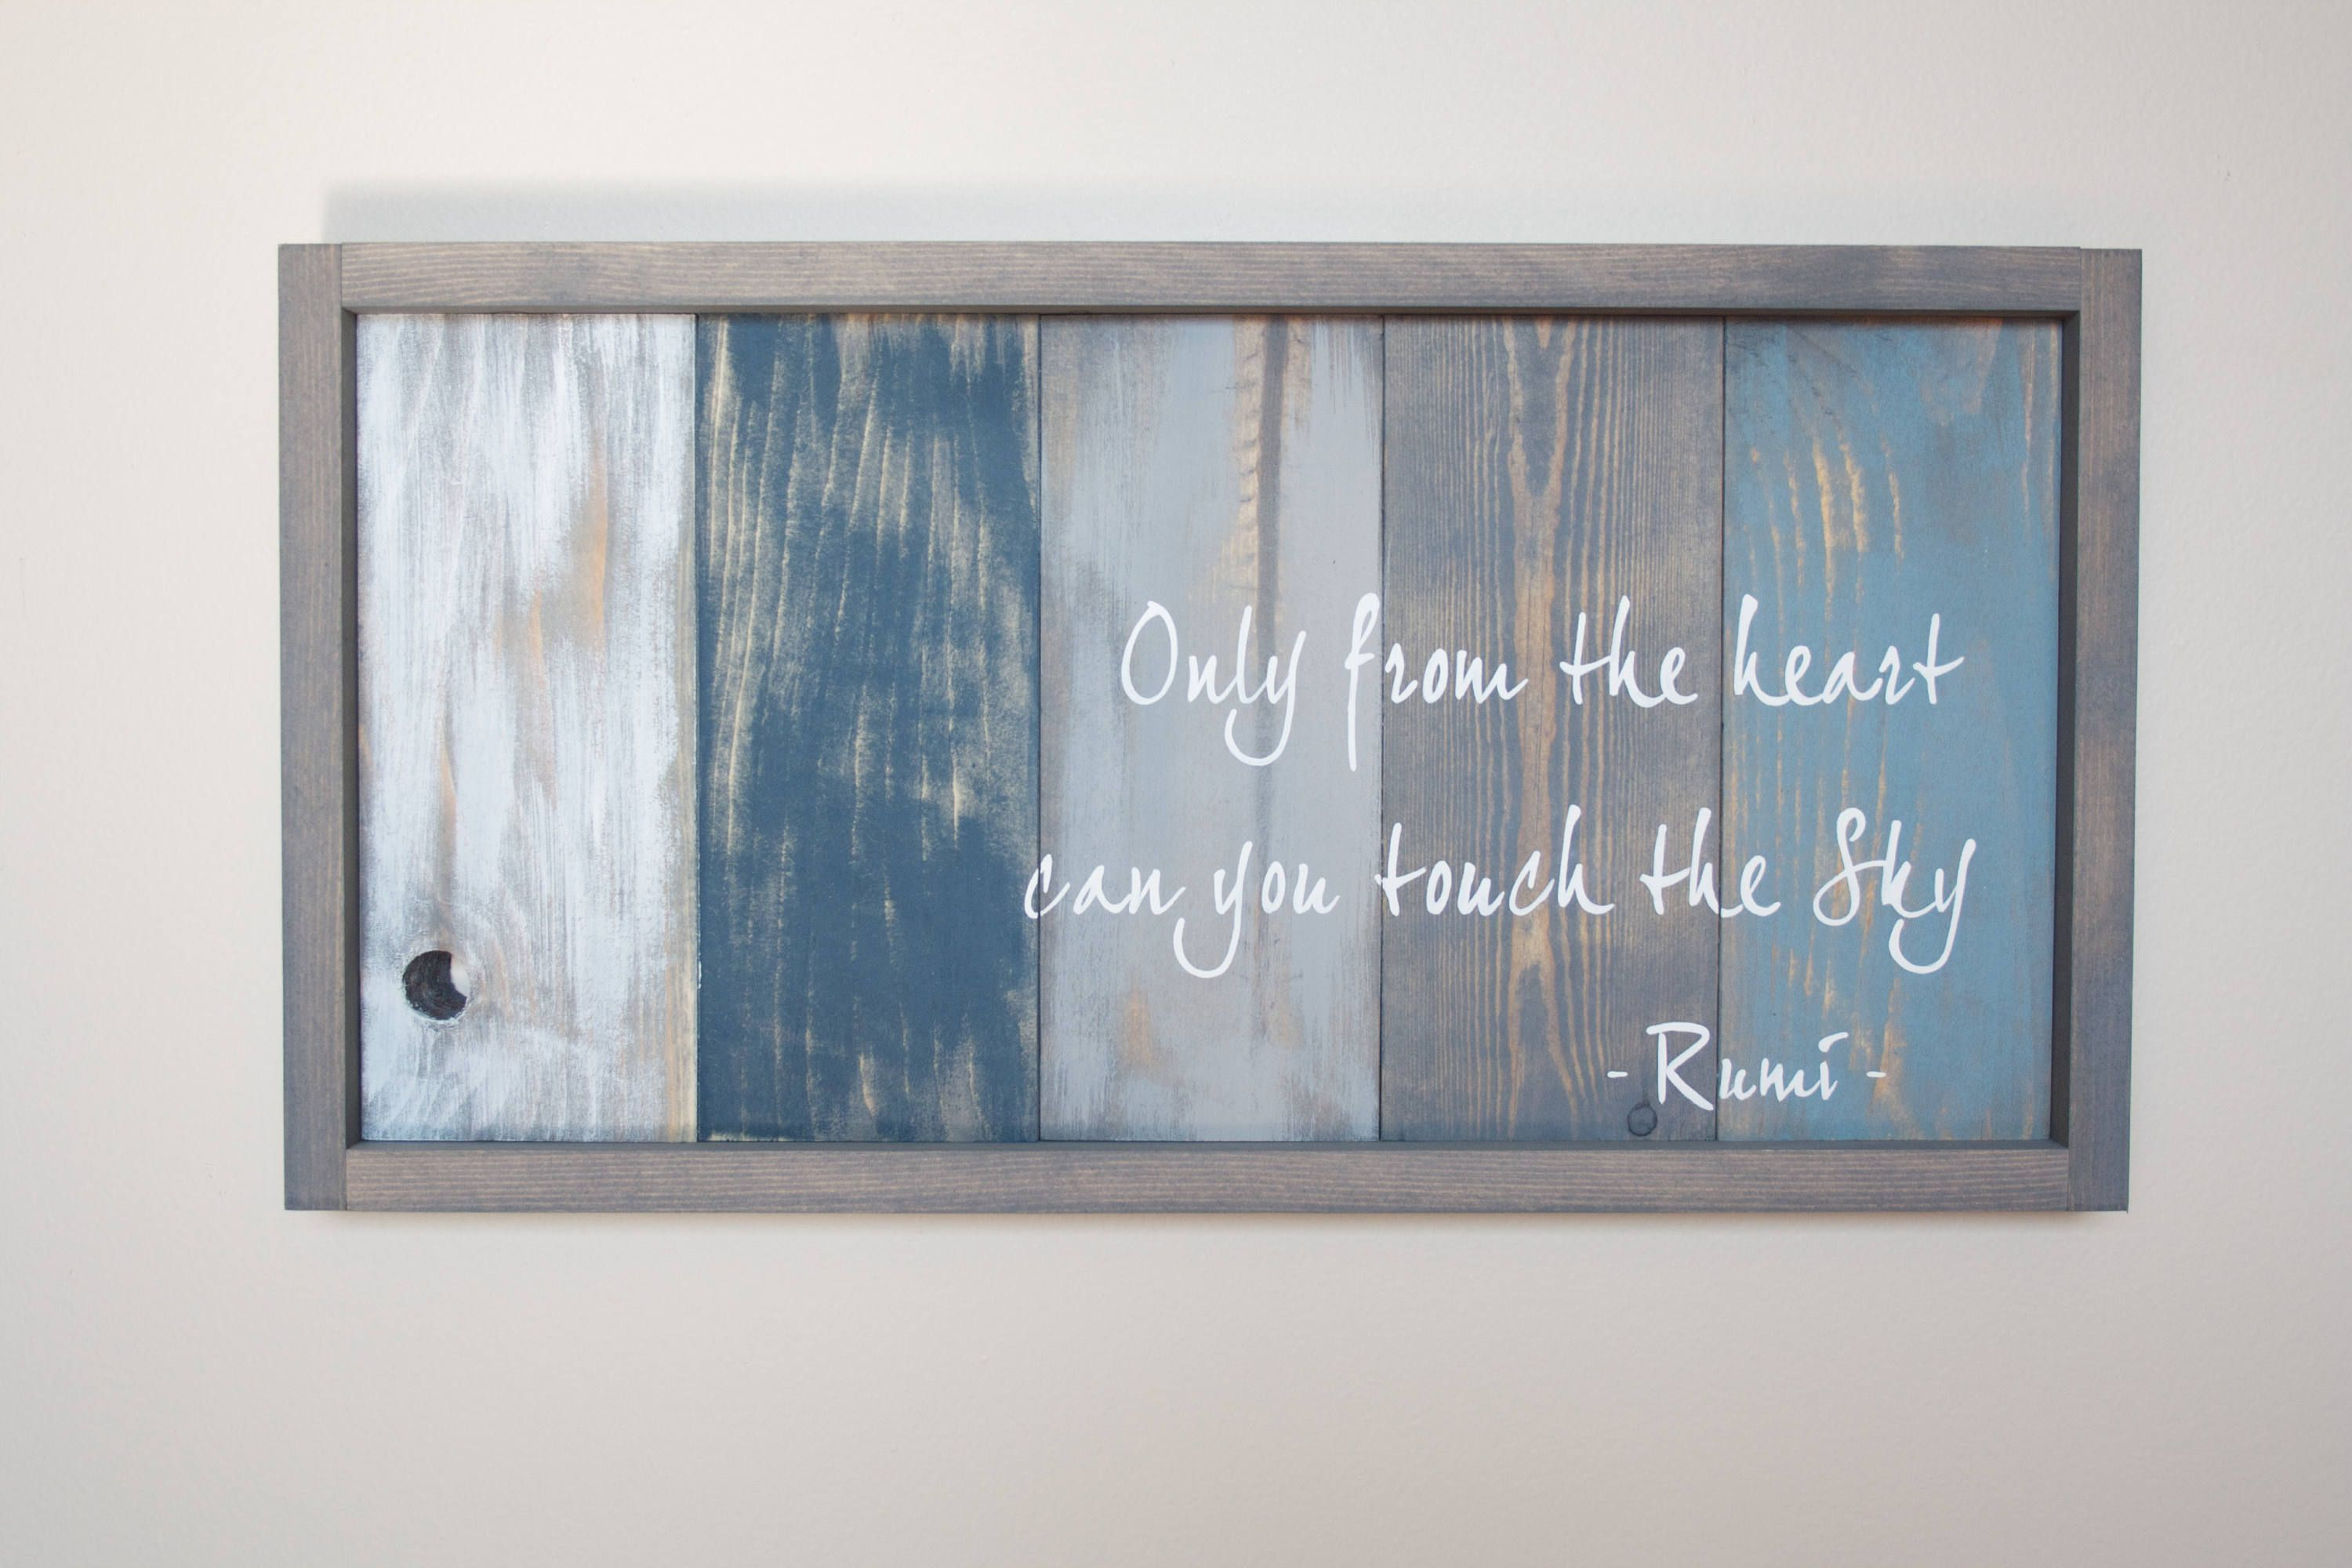 Rumi Quote Art Inspirational Quote Pallet Wood Art Reclaimed Wood Wall Art Framed Wood Sign Motivational Wall Decor Office Decor Wood Pallet Art Reclaimed Wood Wall Art Wood Frame Sign